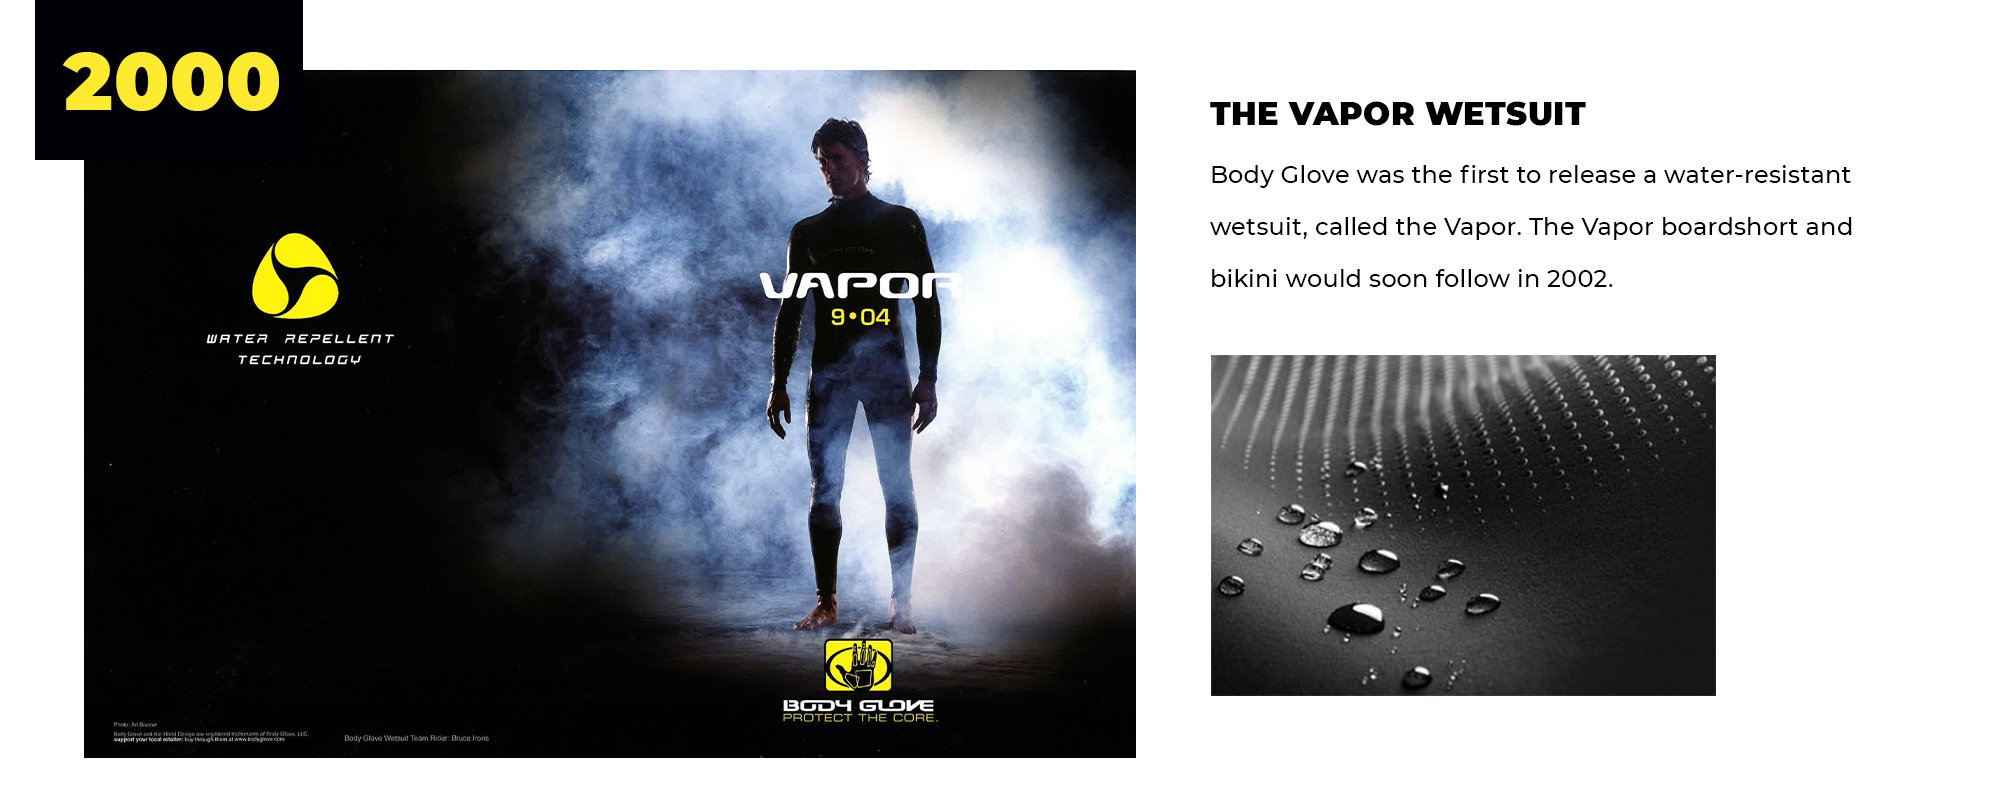 2000 | The Vapor Wetsuit | Body Glove was the first to release a water-resistant wetsuit, called the Vapor. The Vapor boardshort and bikini would soon follow in 2002.